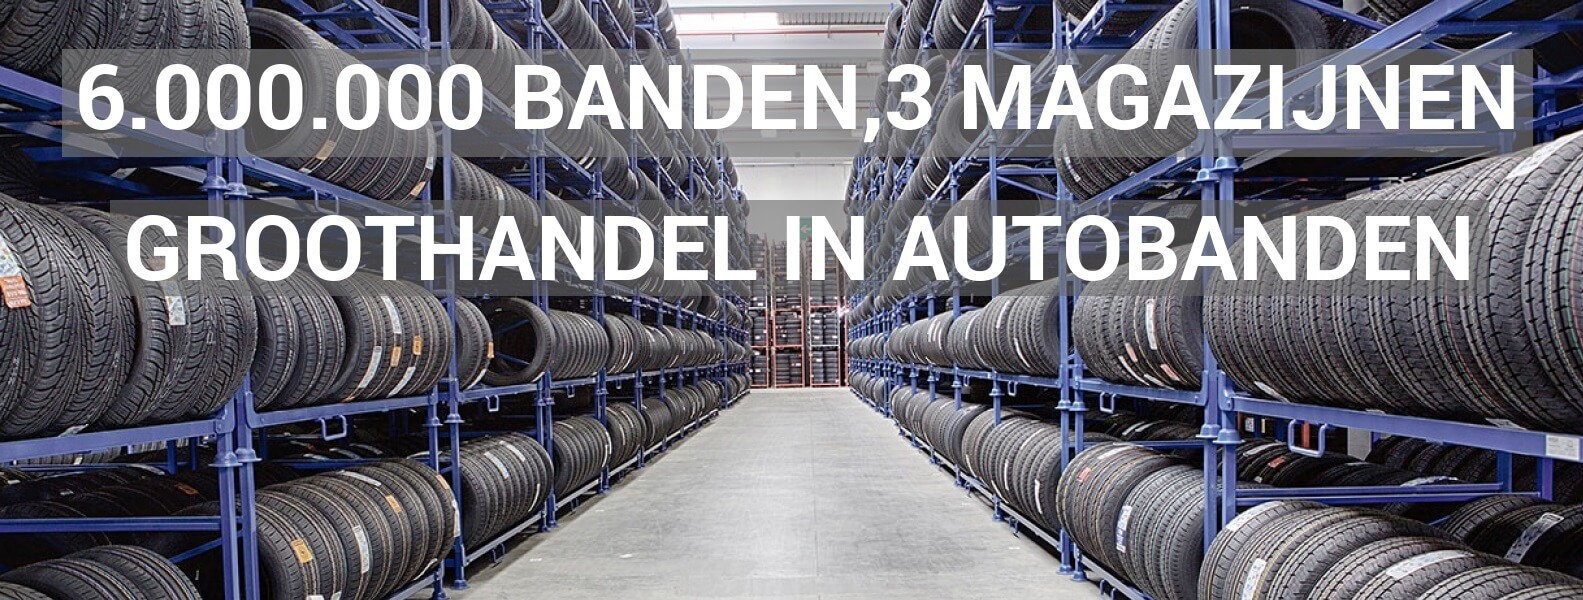 Bandenwarehouse